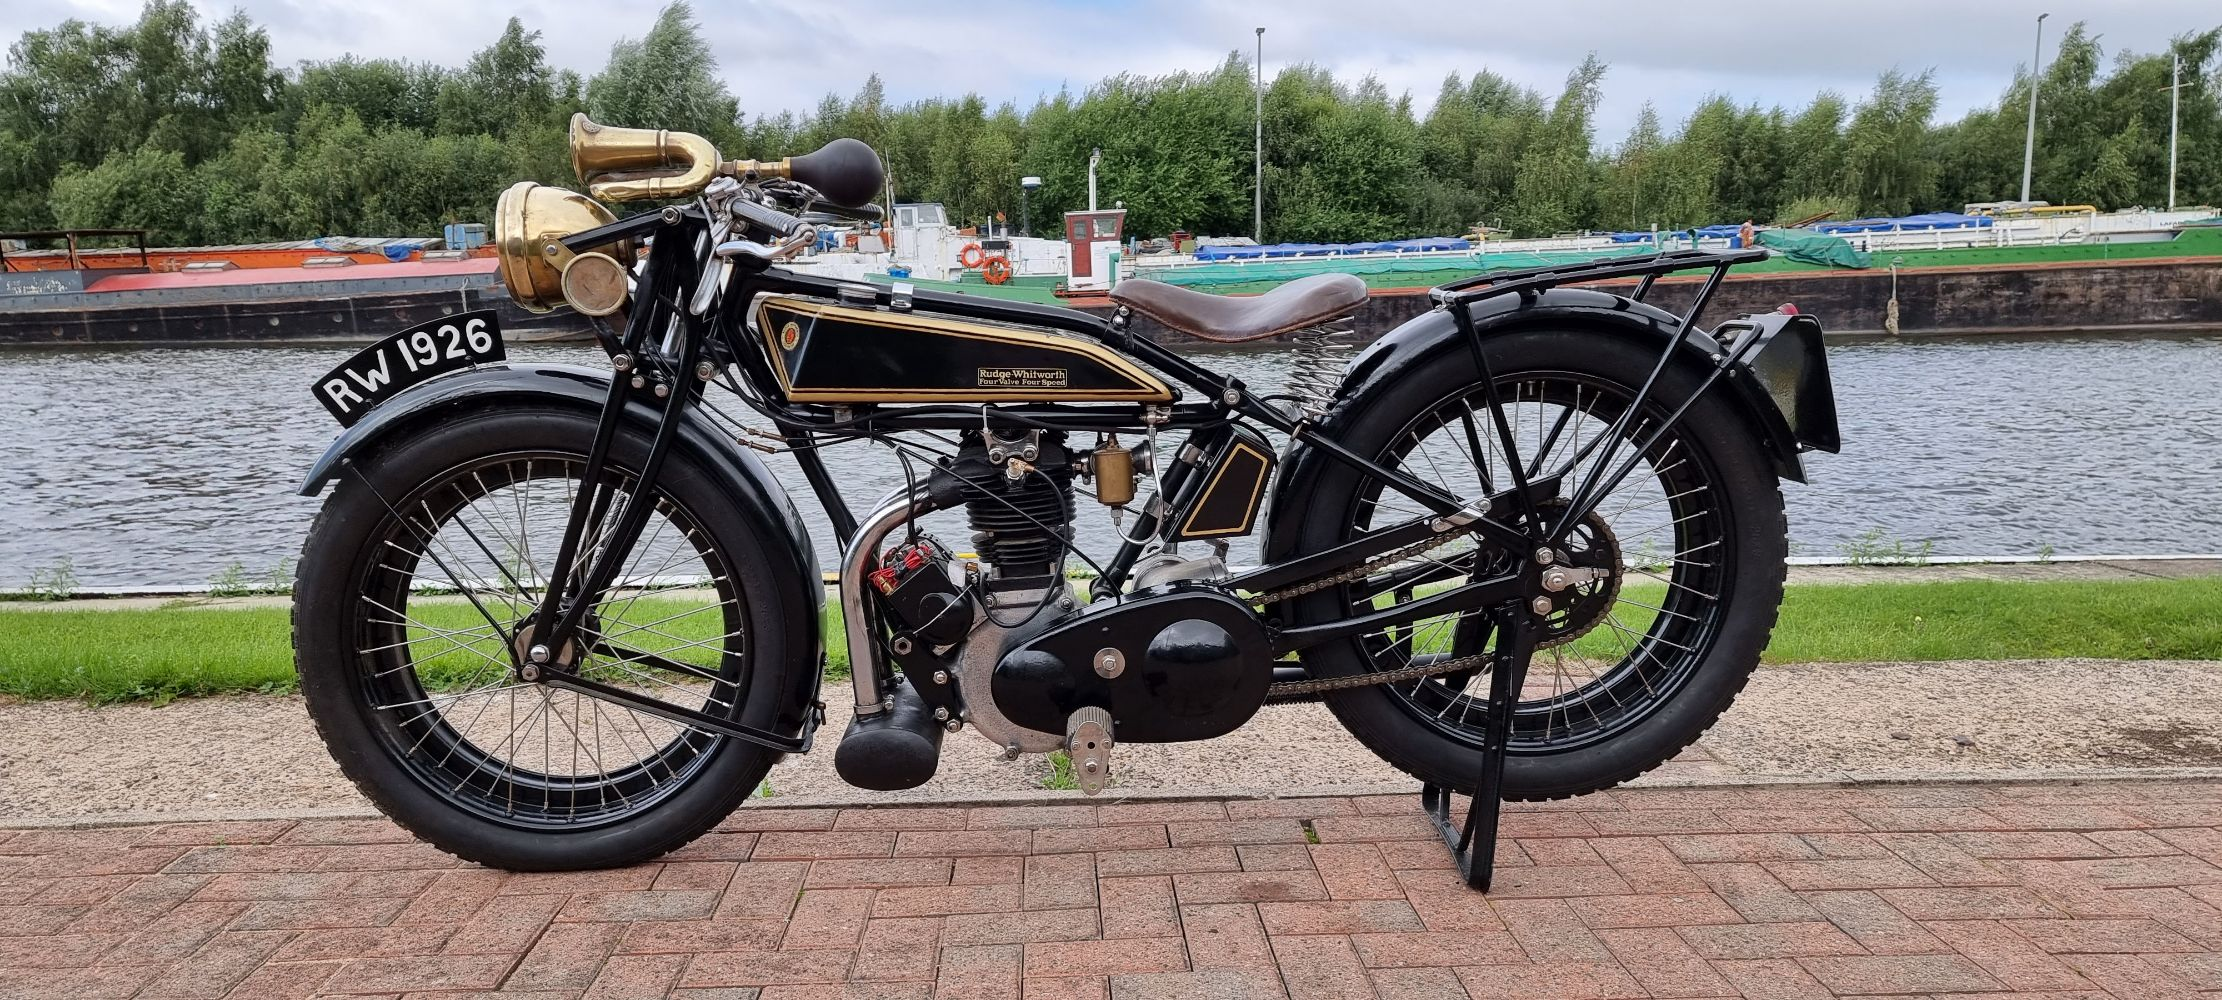 Classic cars and motorcycles auction